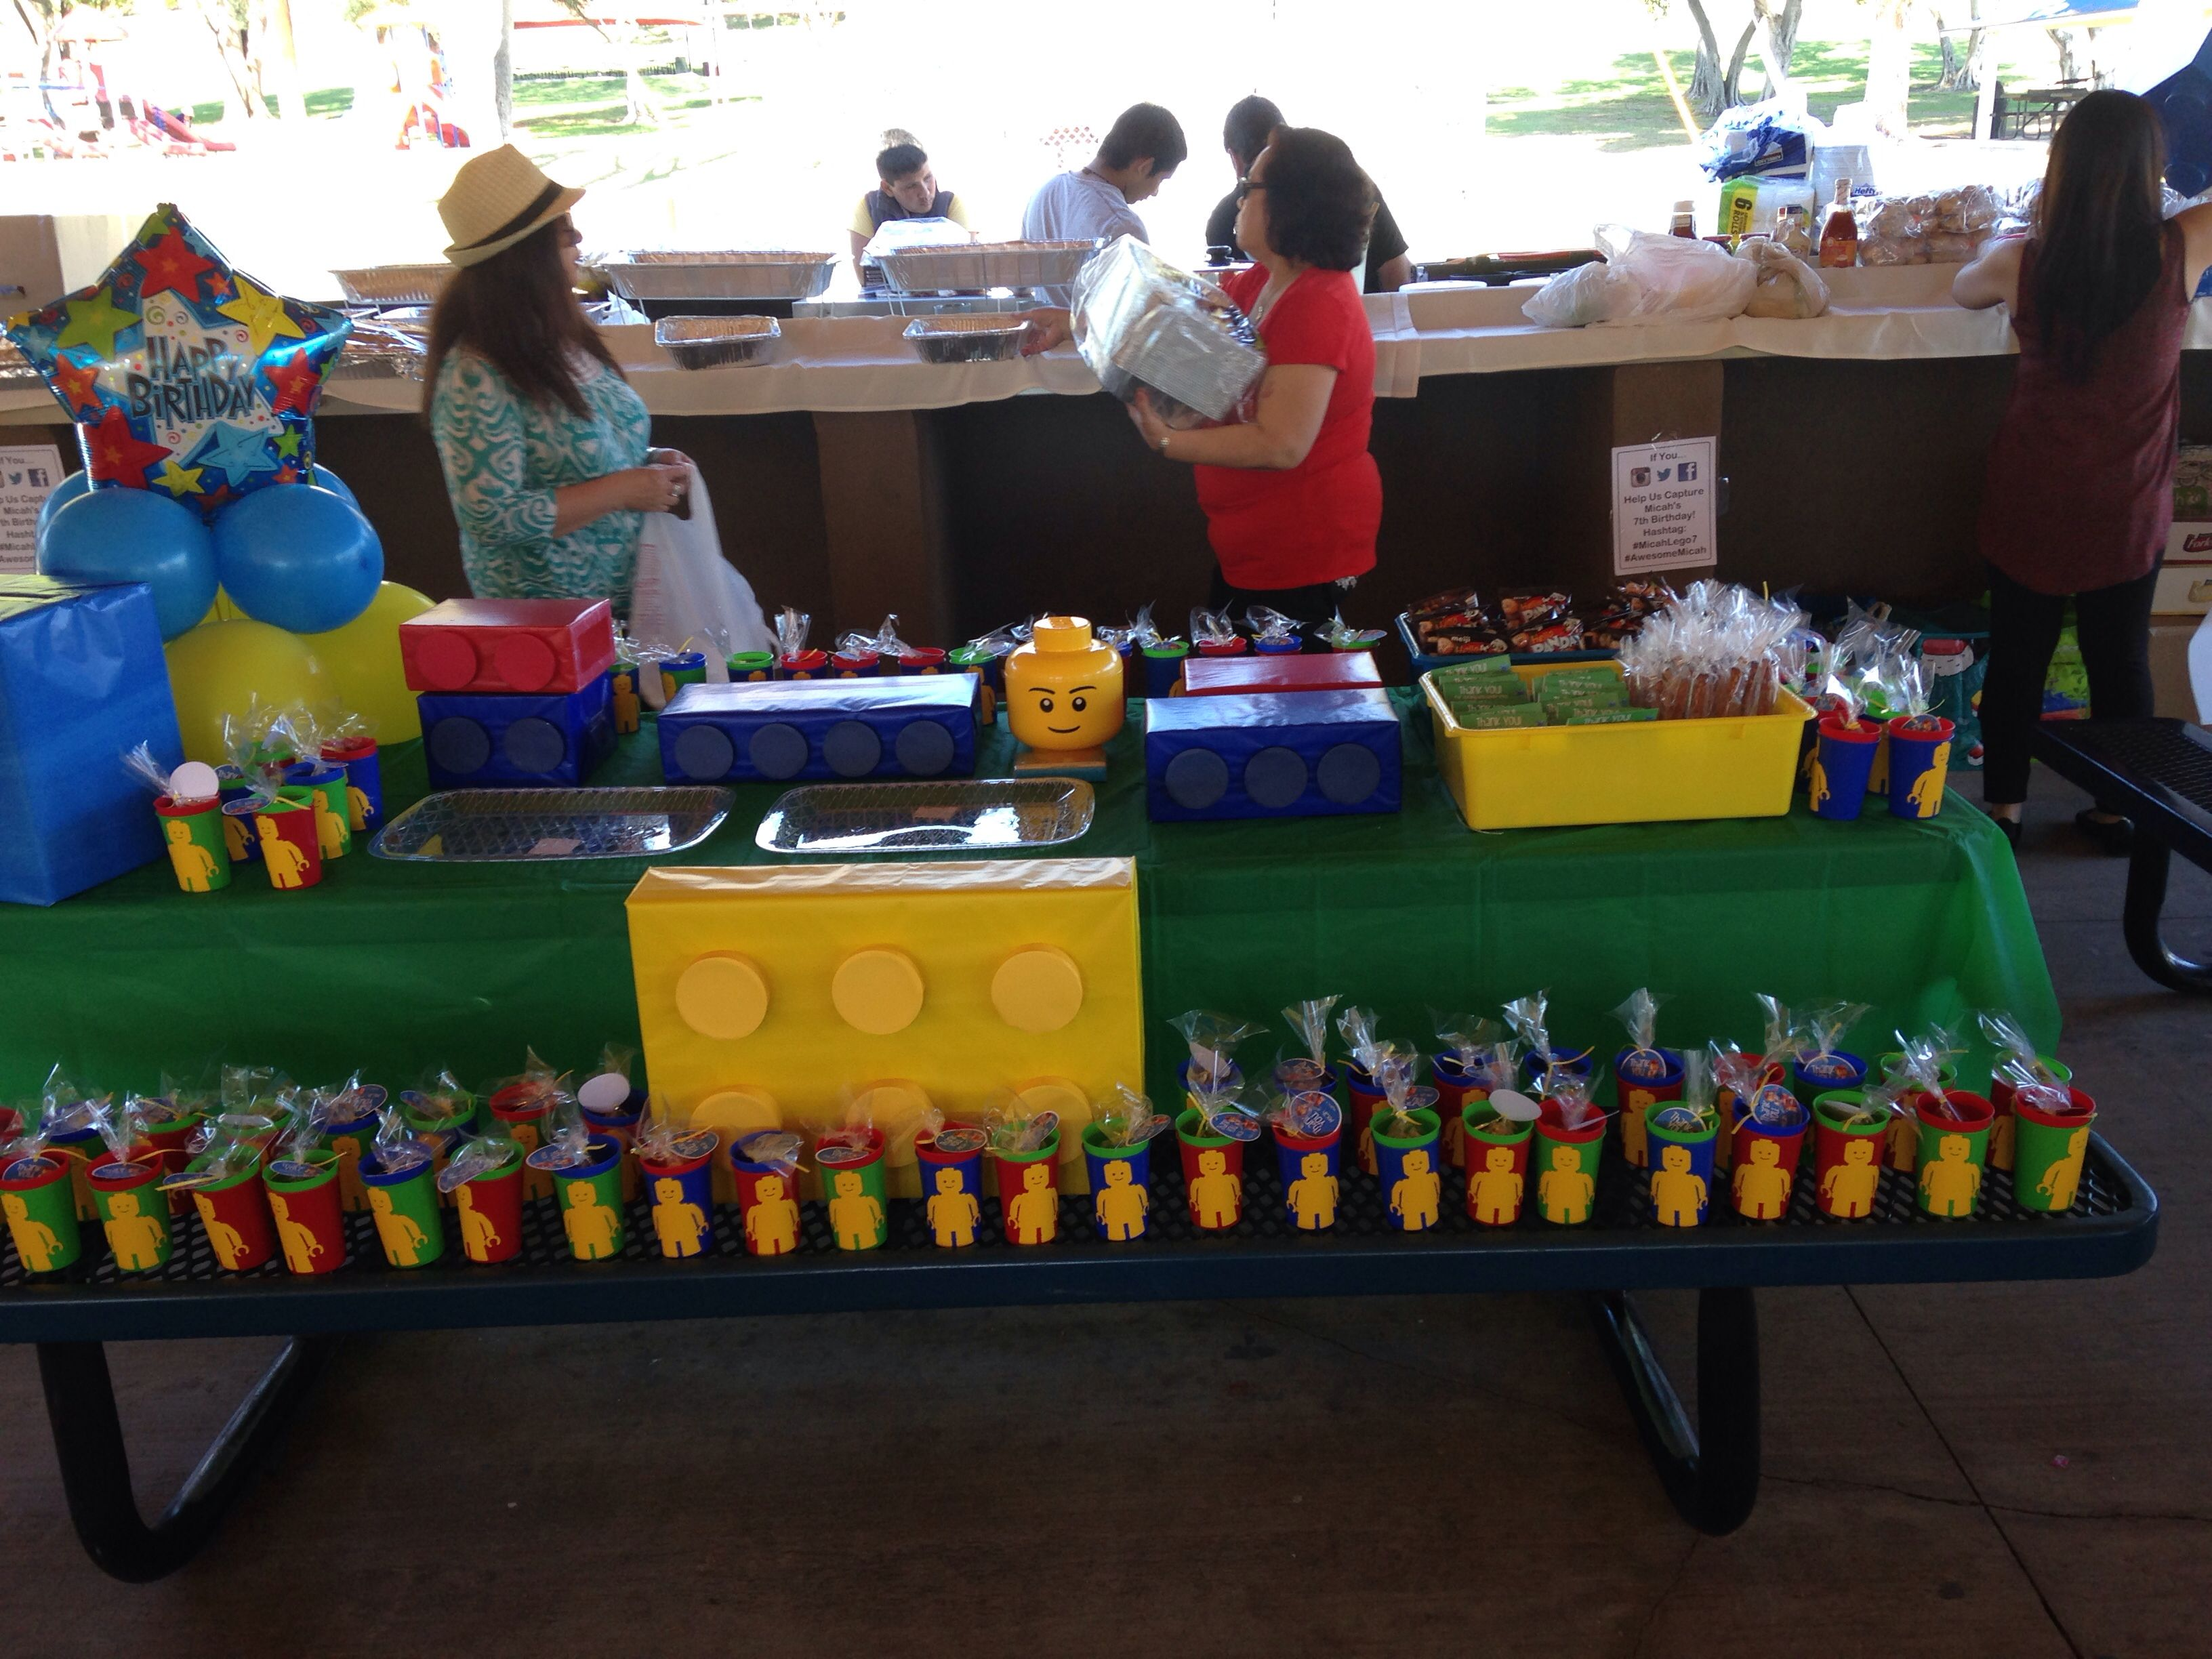 A Lego Themes Birthday Party For A 7 Year Old Boy So